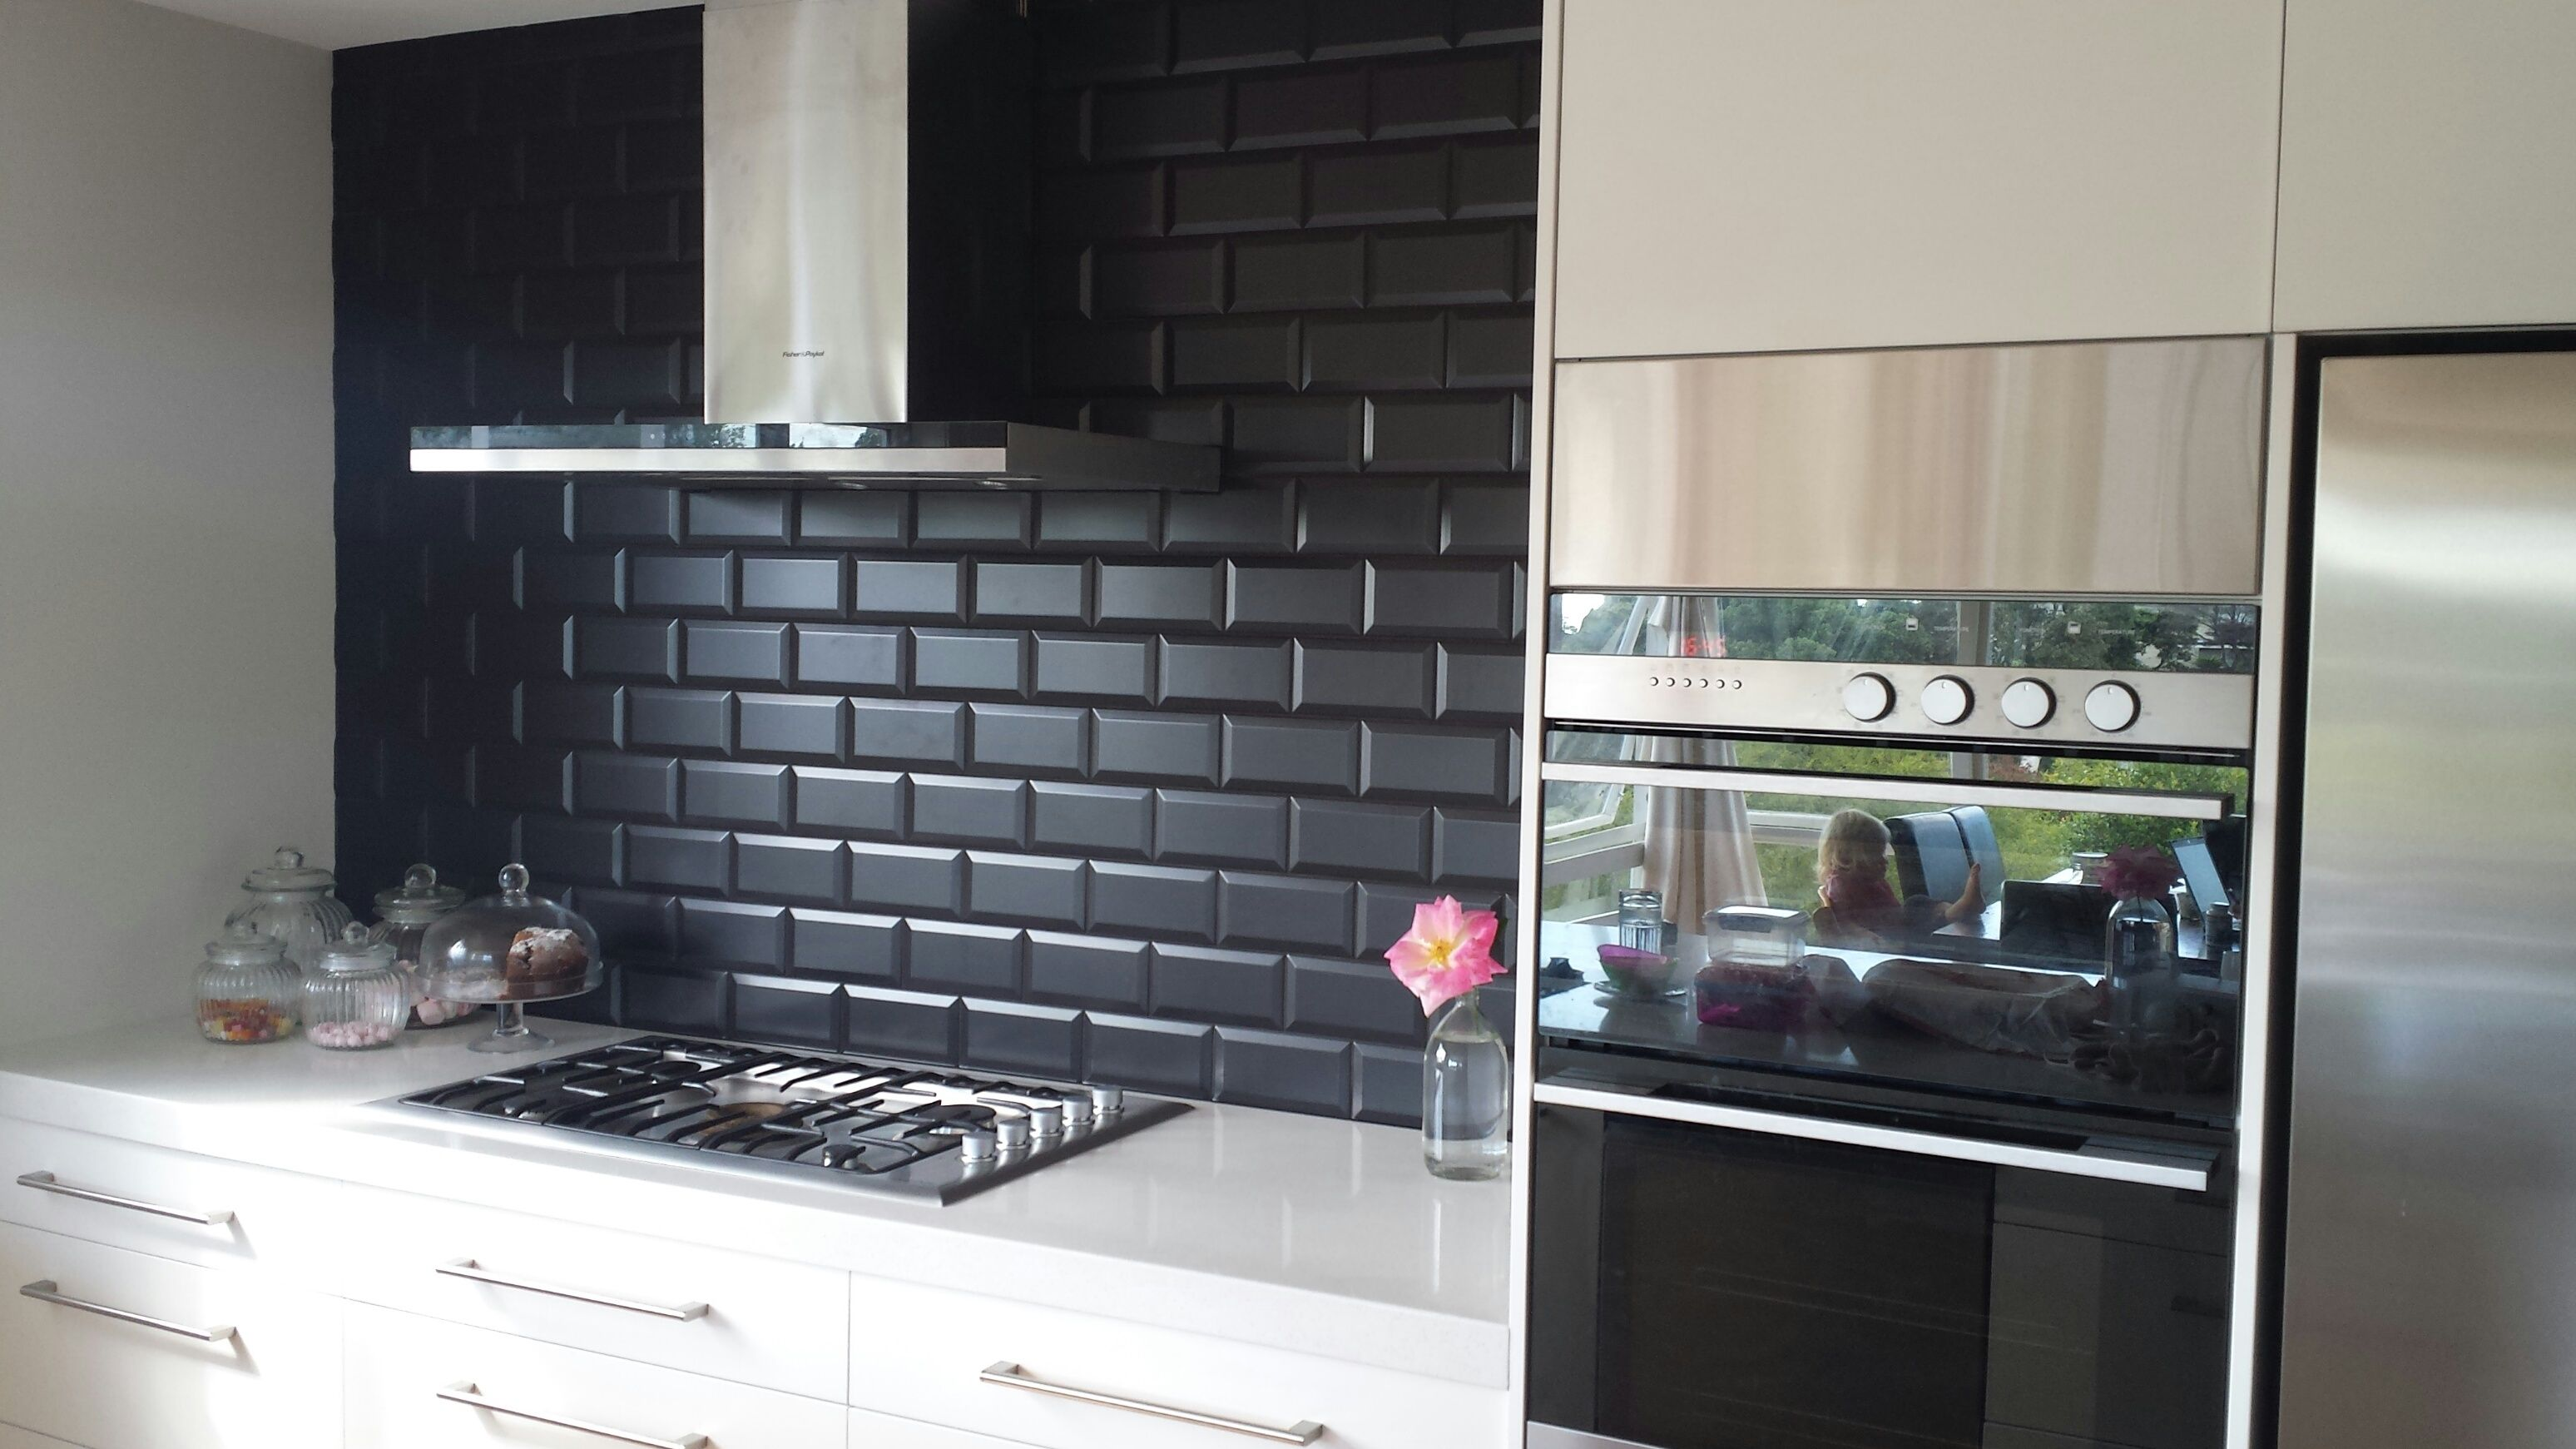 Classic Matte Subway Tiles Are Ideal For Creating Brick Pattern On